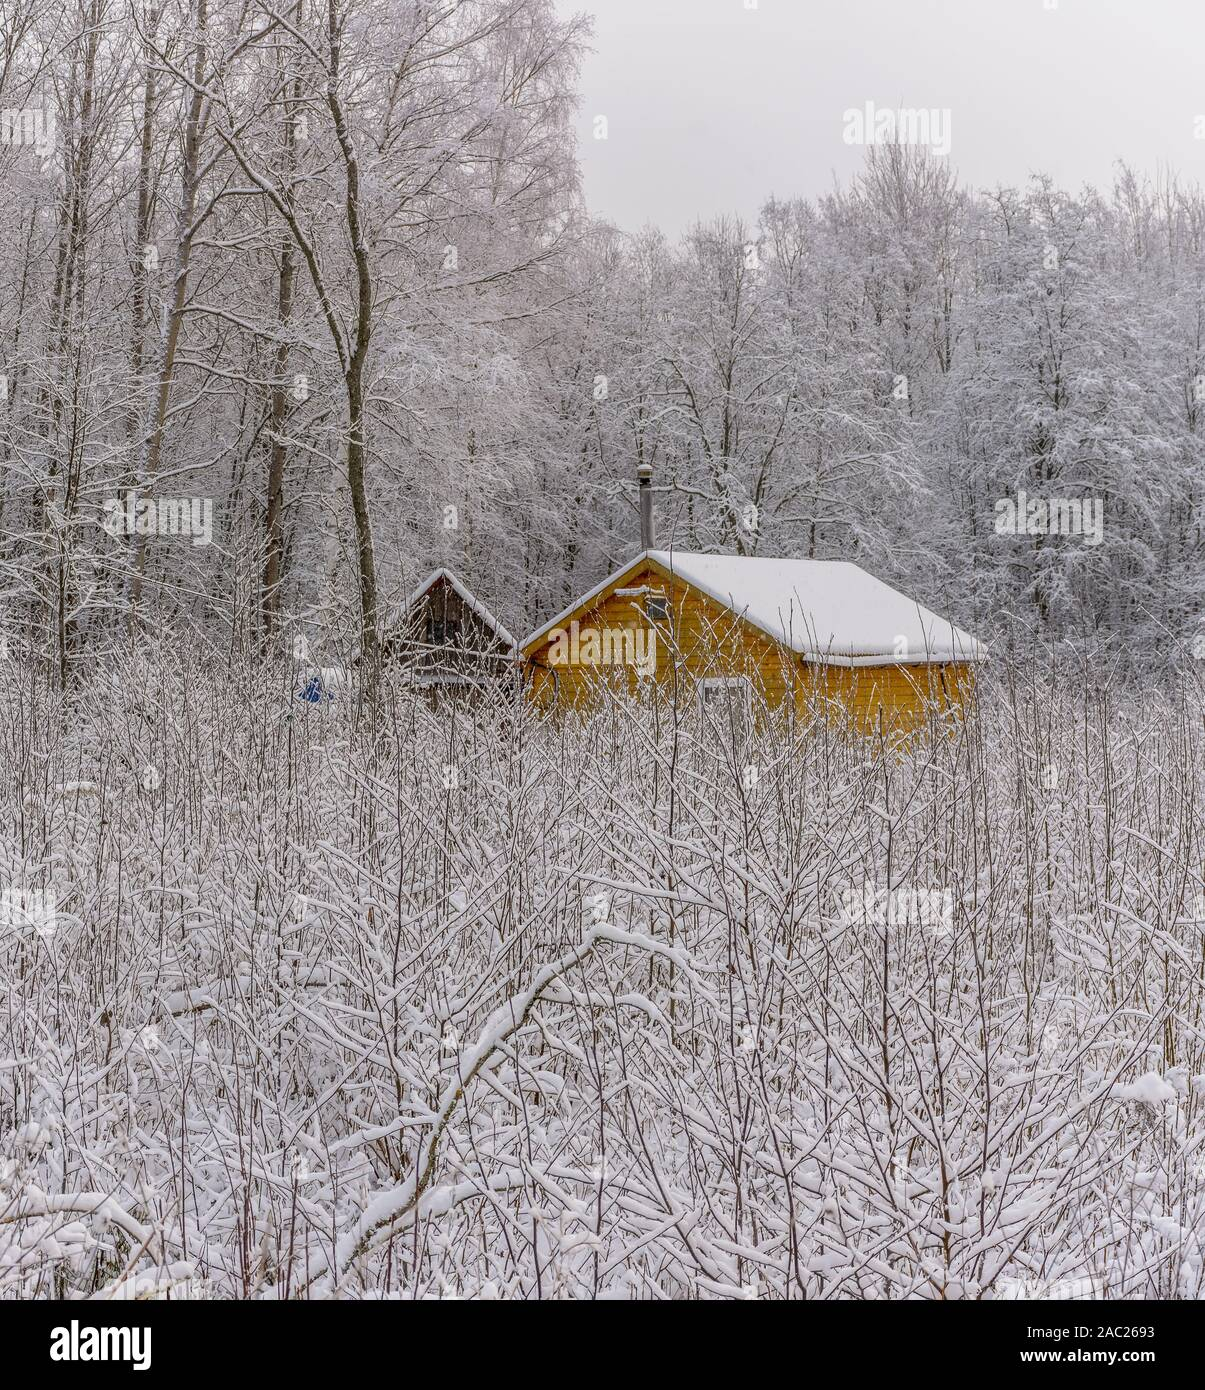 Yellow house in the snowy December forest. Stock Photo